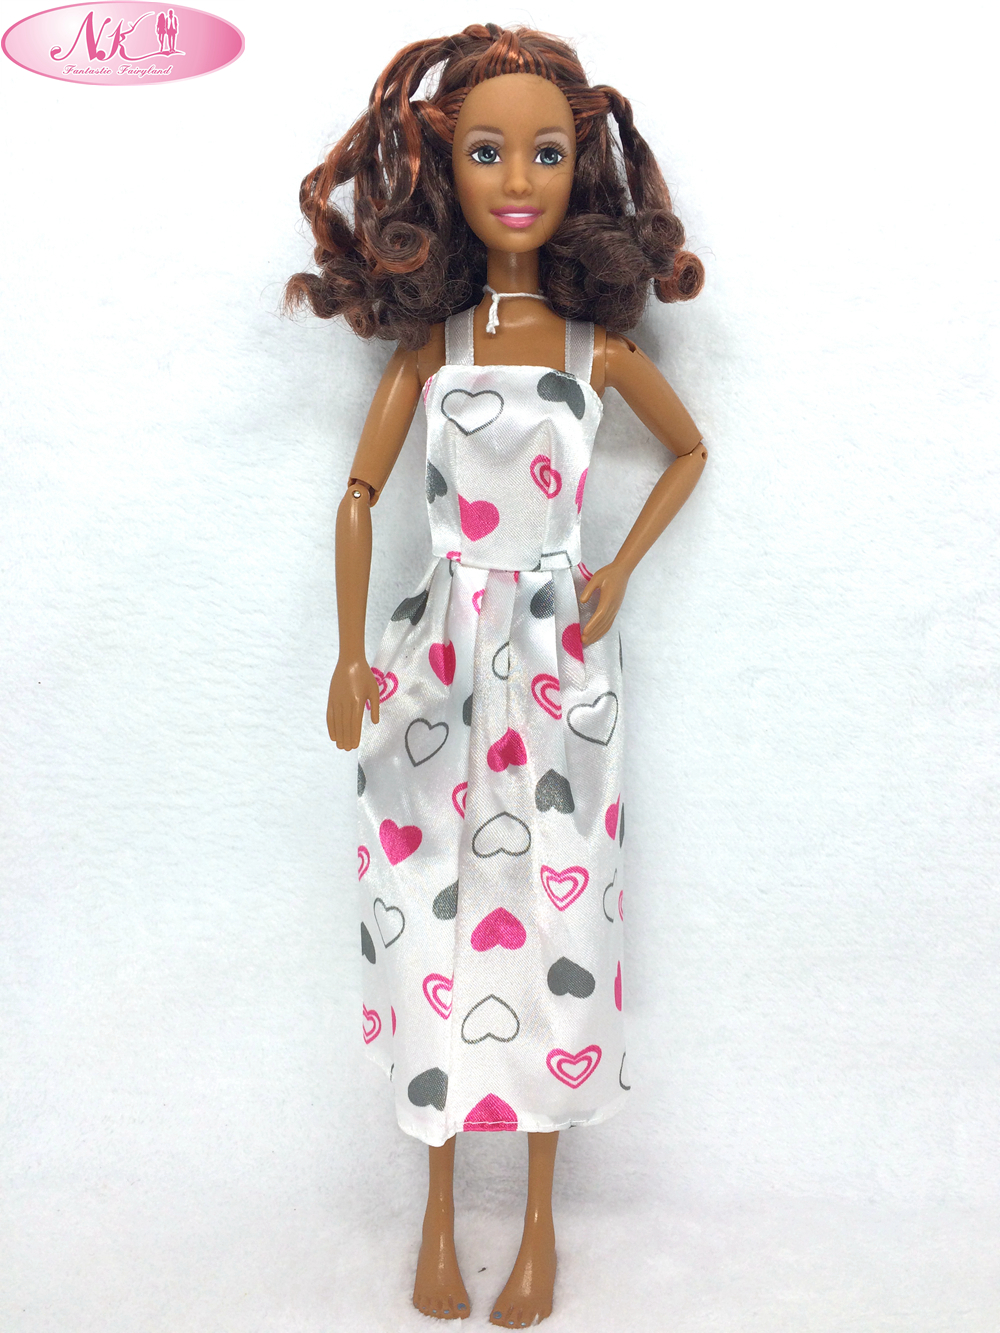 NK One Pce Doll Dress Beautiful Maxiskit Simple Style Handmade Party Clothe Casual Dress For Barbie Doll Best GirlsGift 001E<br><br>Aliexpress